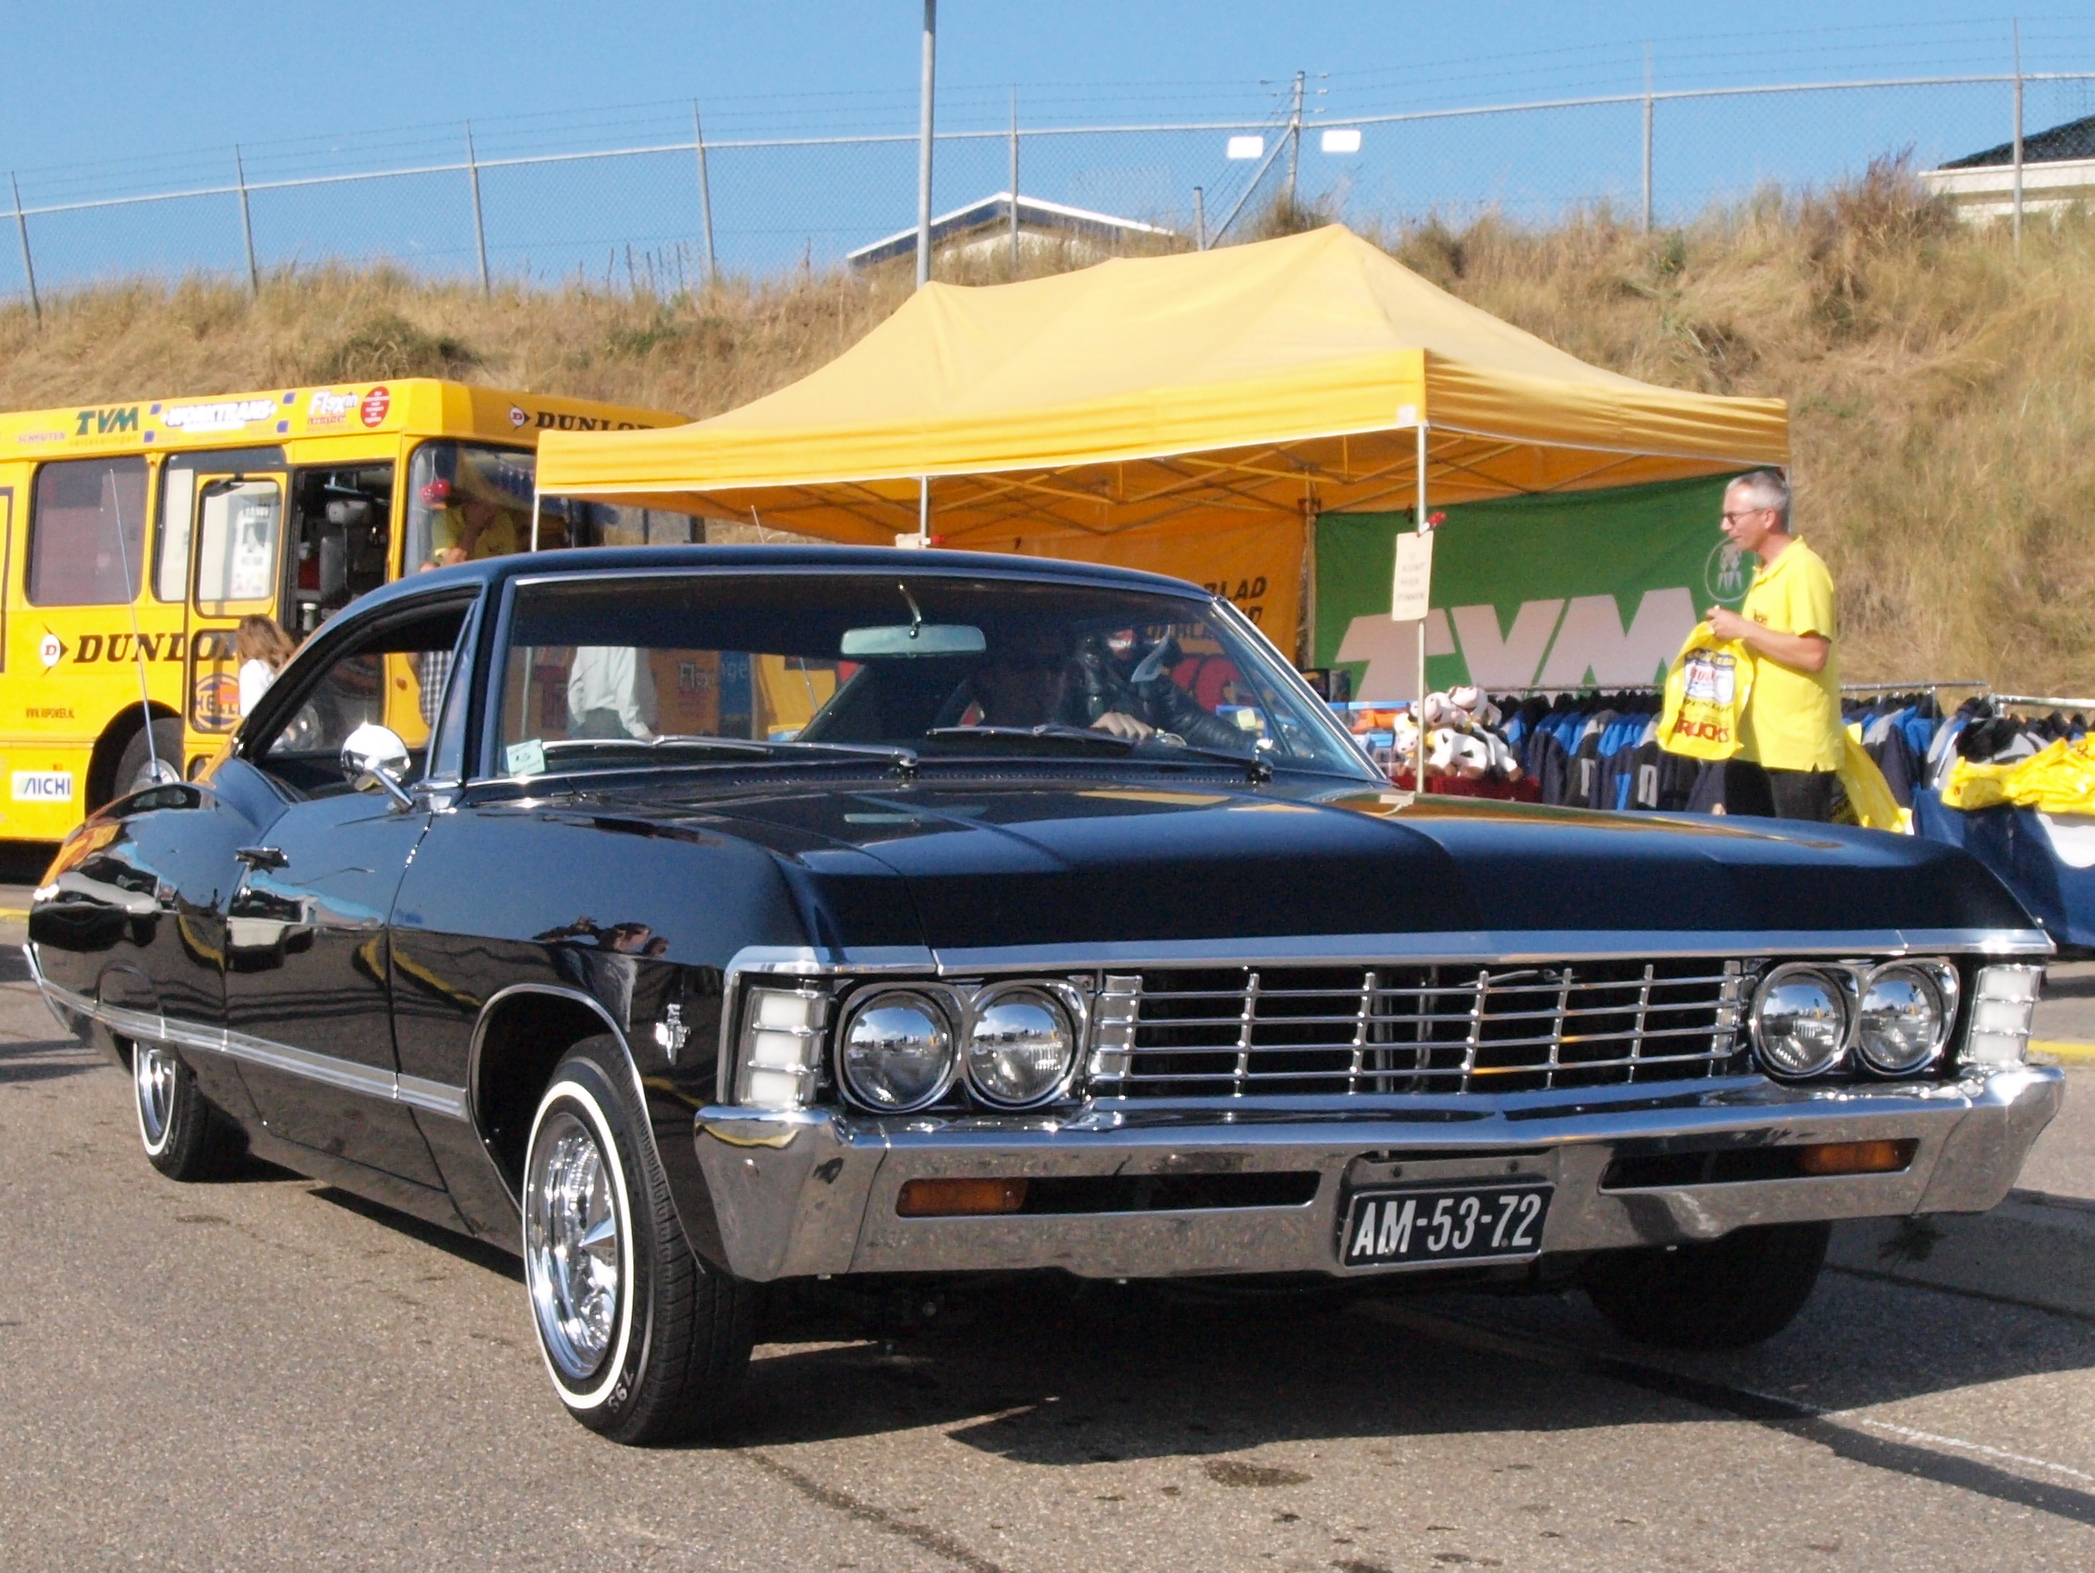 File:Chevrolet Impala Sport Coupe dutch licence registration AM-53-72 pic2.JPG - Wikimedia Commons